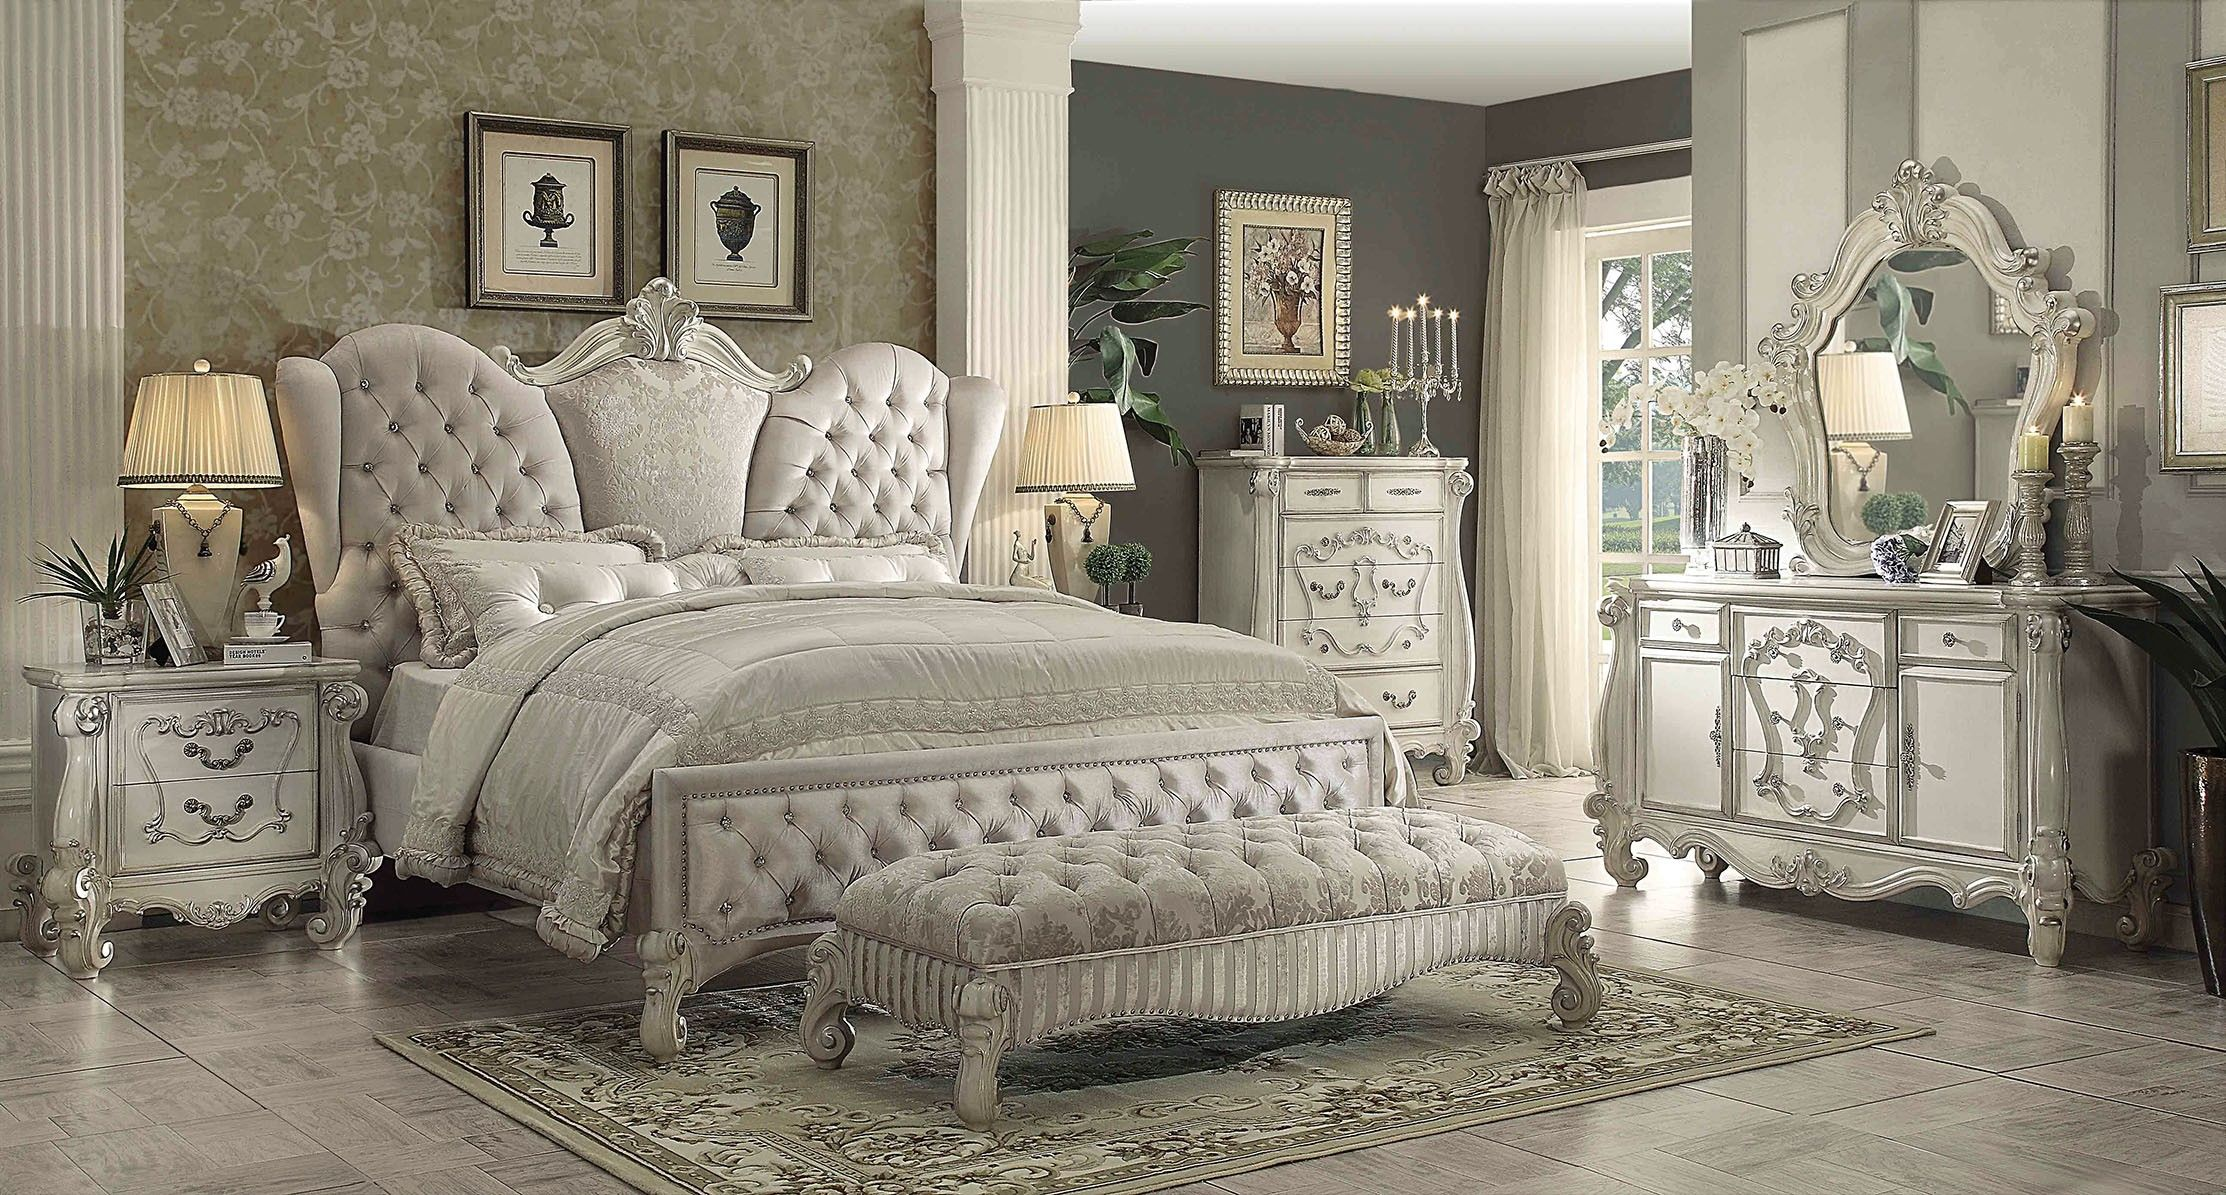 acme versailles 4-piece upholstered bedroom set in ivory velvet